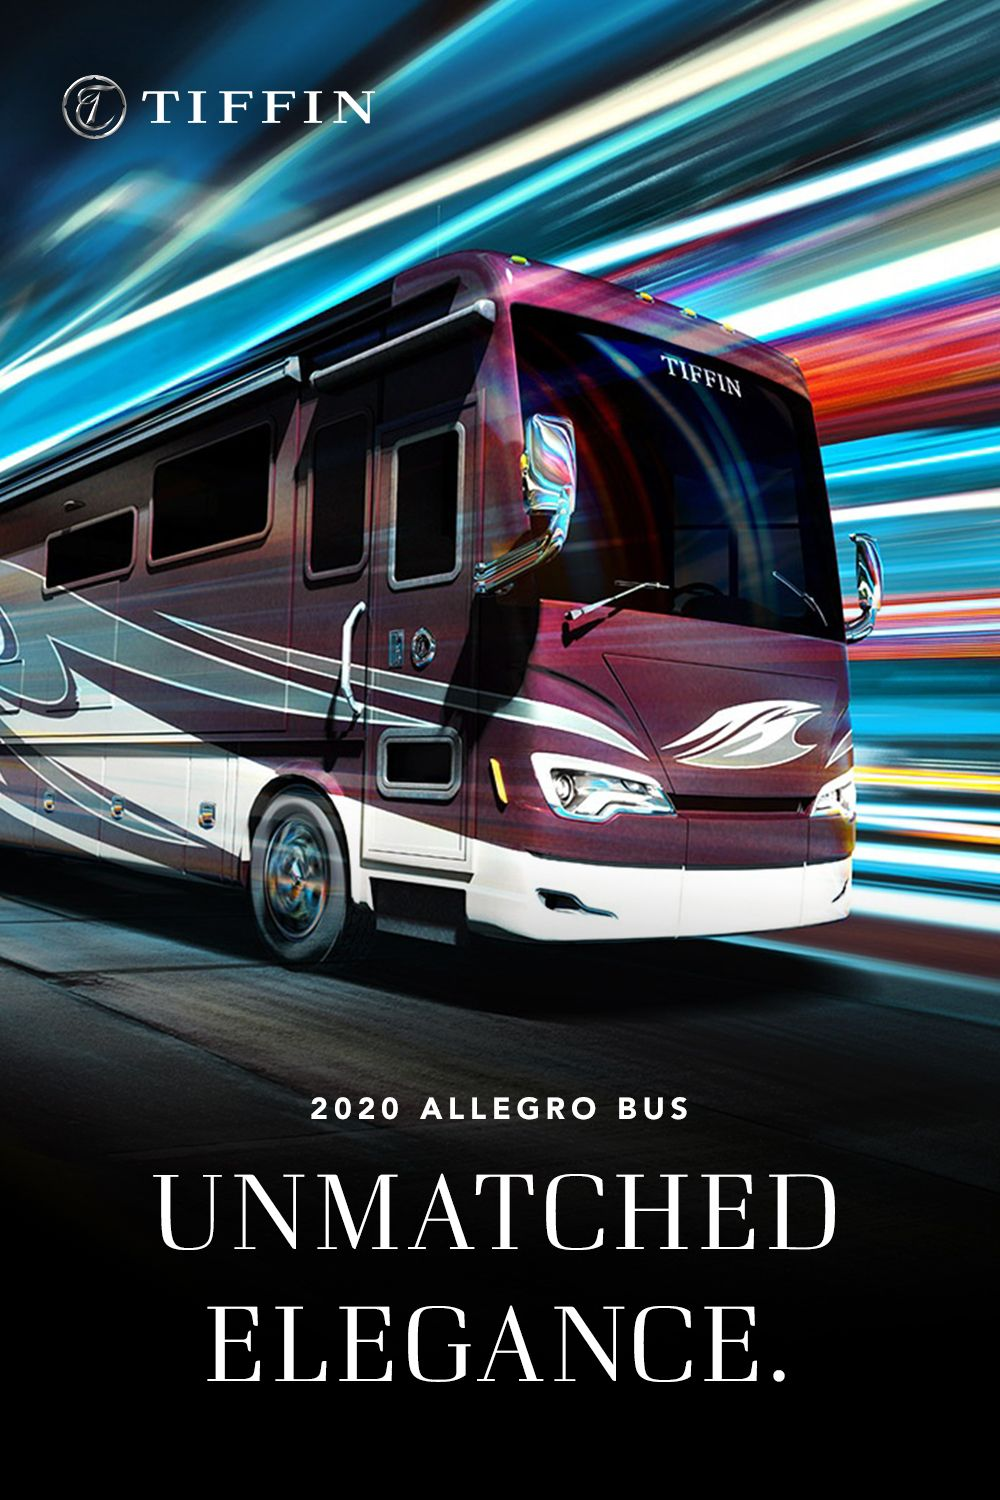 The 2020 Allegro Bus Is The Perfect Traveling Companion Offering